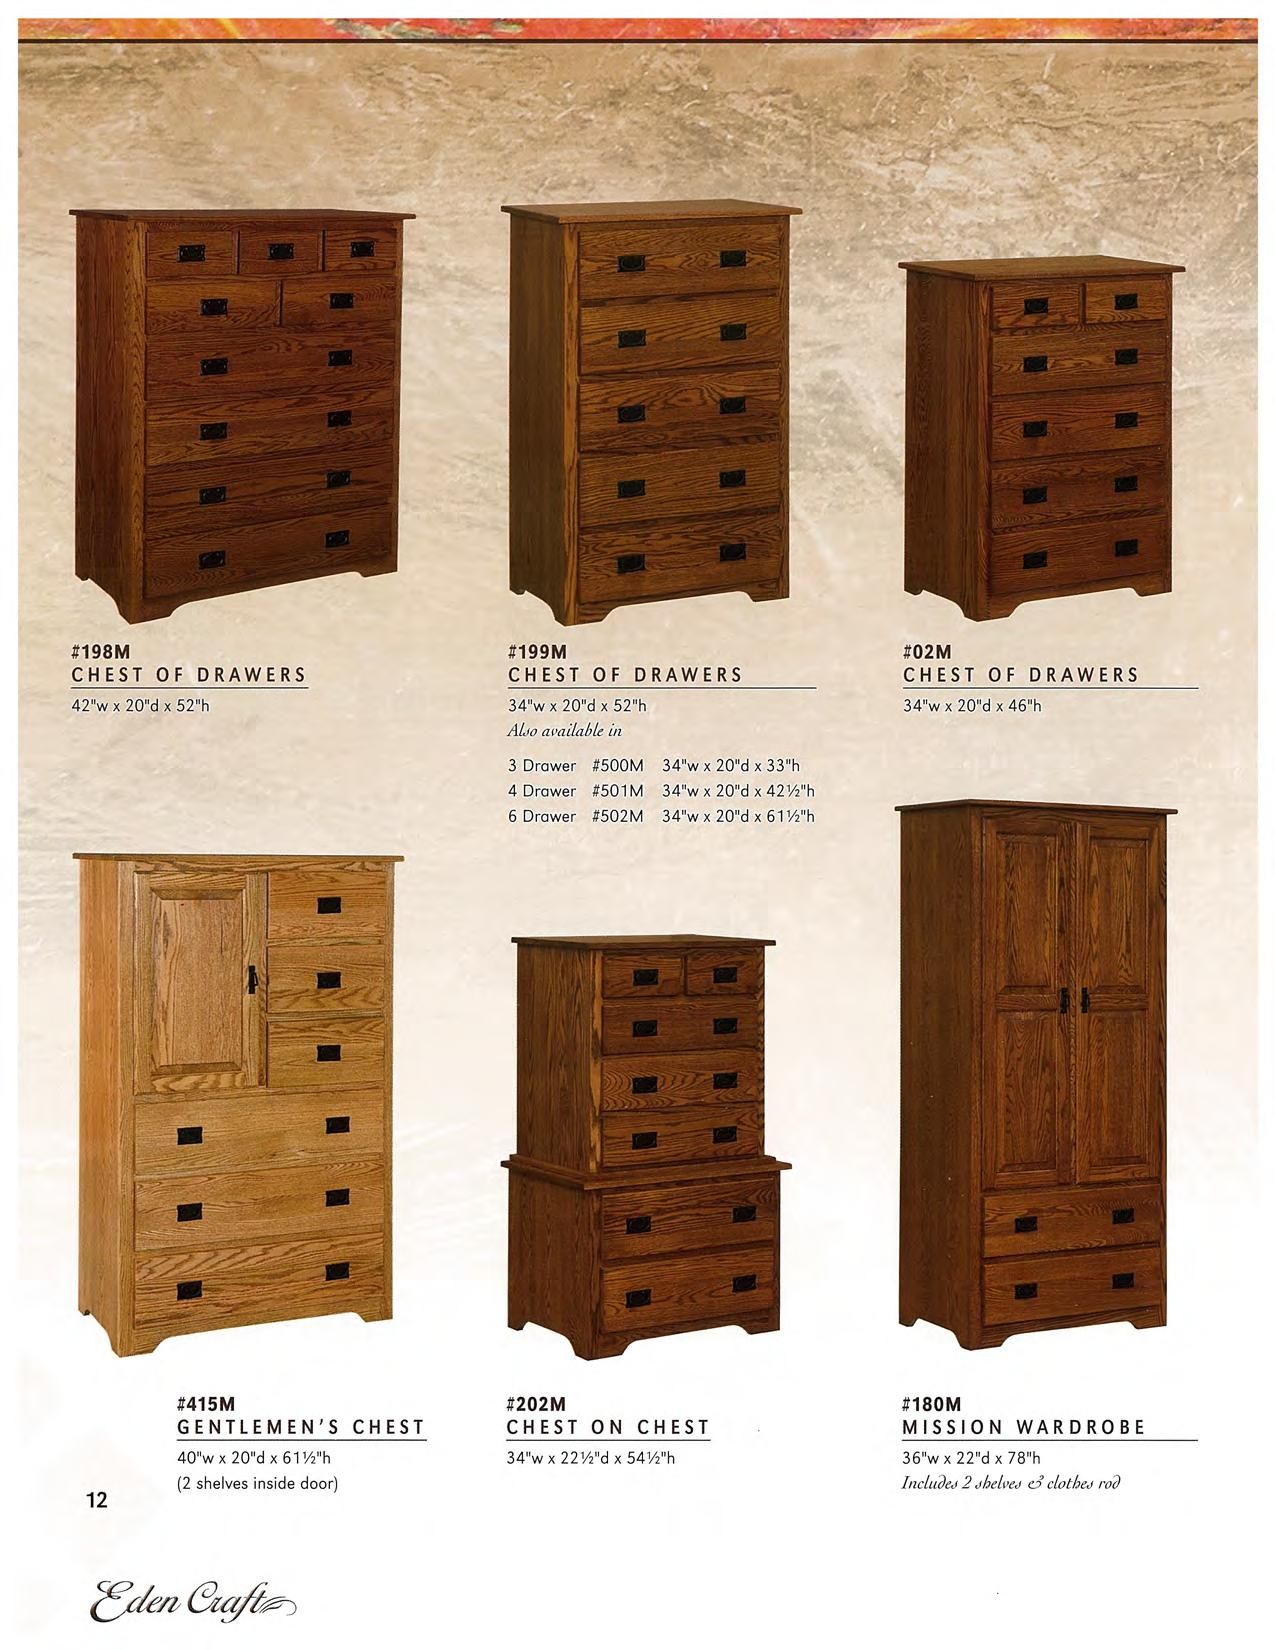 furniture-page-012